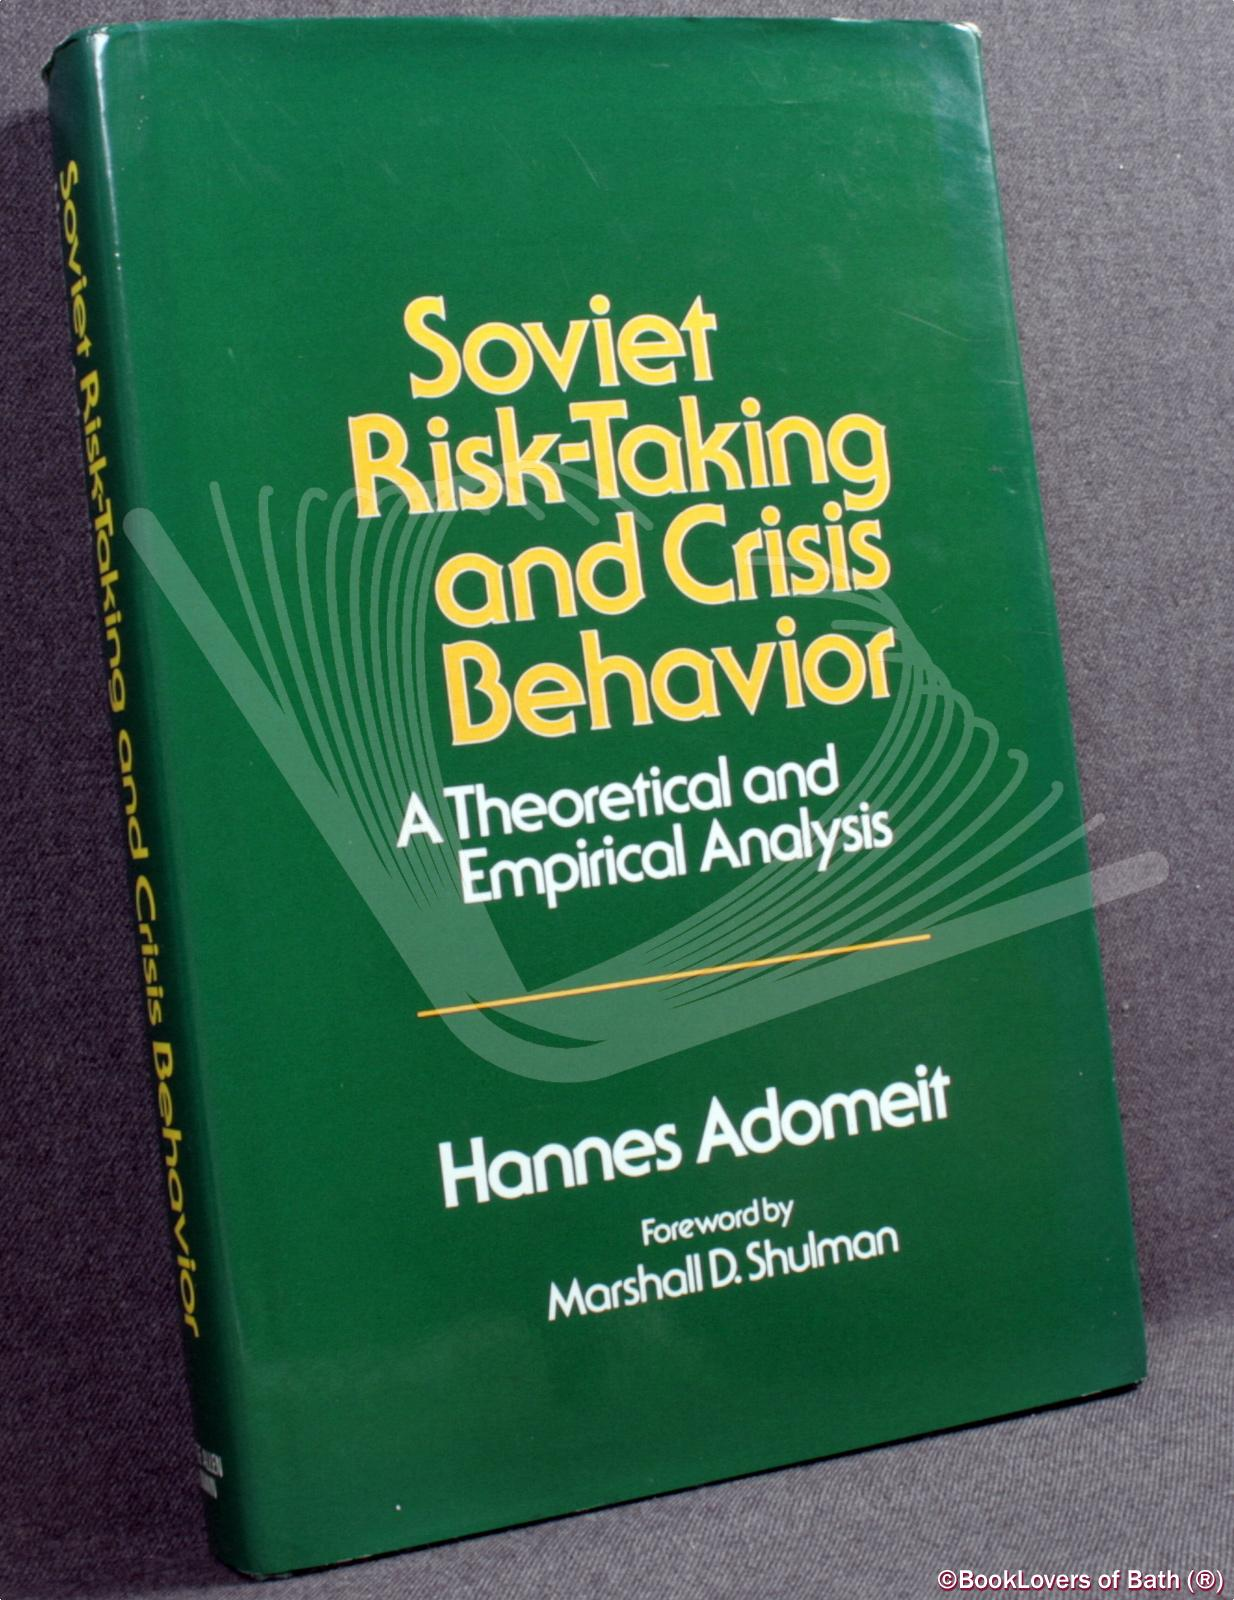 Soviet Risk-taking and Crisis Behavior: A Theoretical and Empirical Analysis - Hannes Adomeit